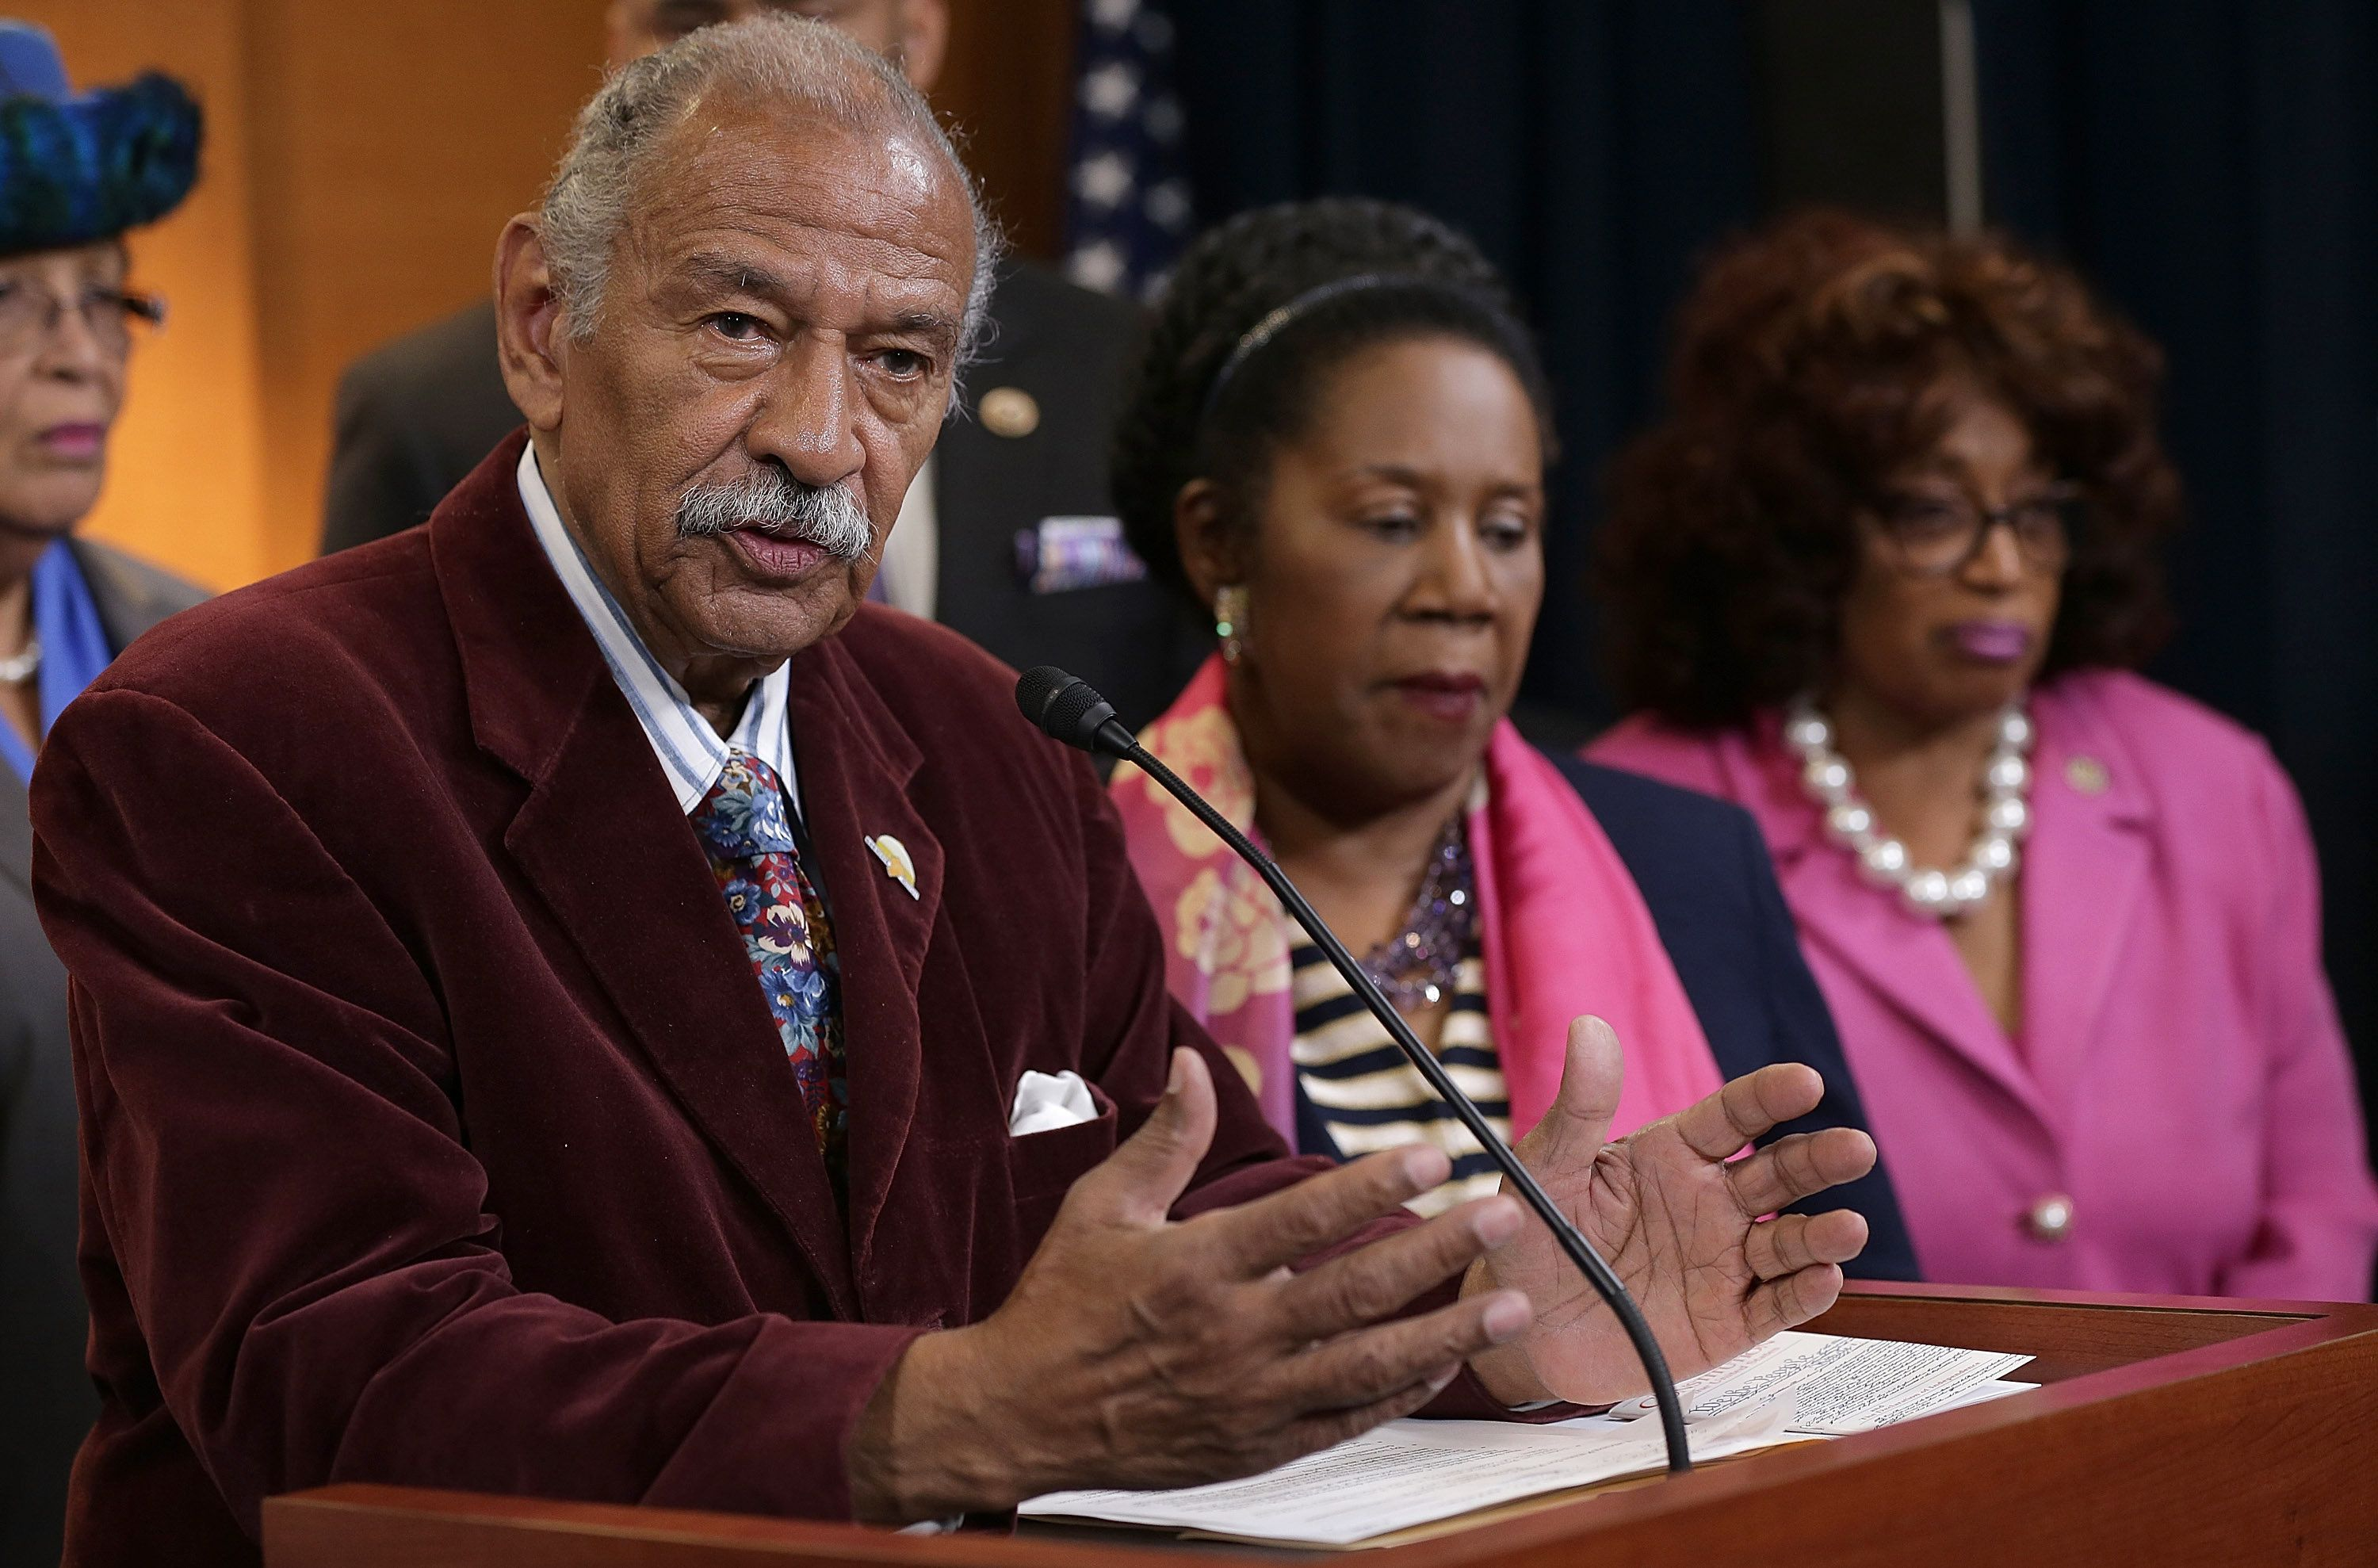 WASHINGTON, DC - MARCH 19:  Rep. Rep. John Conyers (L) (D-MI) joins other House Democrats at a press conference calling for a Senate vote on the nomination of Loretta Lynch to be the next Attorney General March 19, 2015 in Washington, DC. Lynch's nomination has languished in the U.S. Senate for 21 days since her nomination was passed out of the Senate Judiciary Committee. Also pictured is Rep. Shelia Jackson Lee (2nd R) (D-TX). (Photo by Win McNamee/Getty Images)